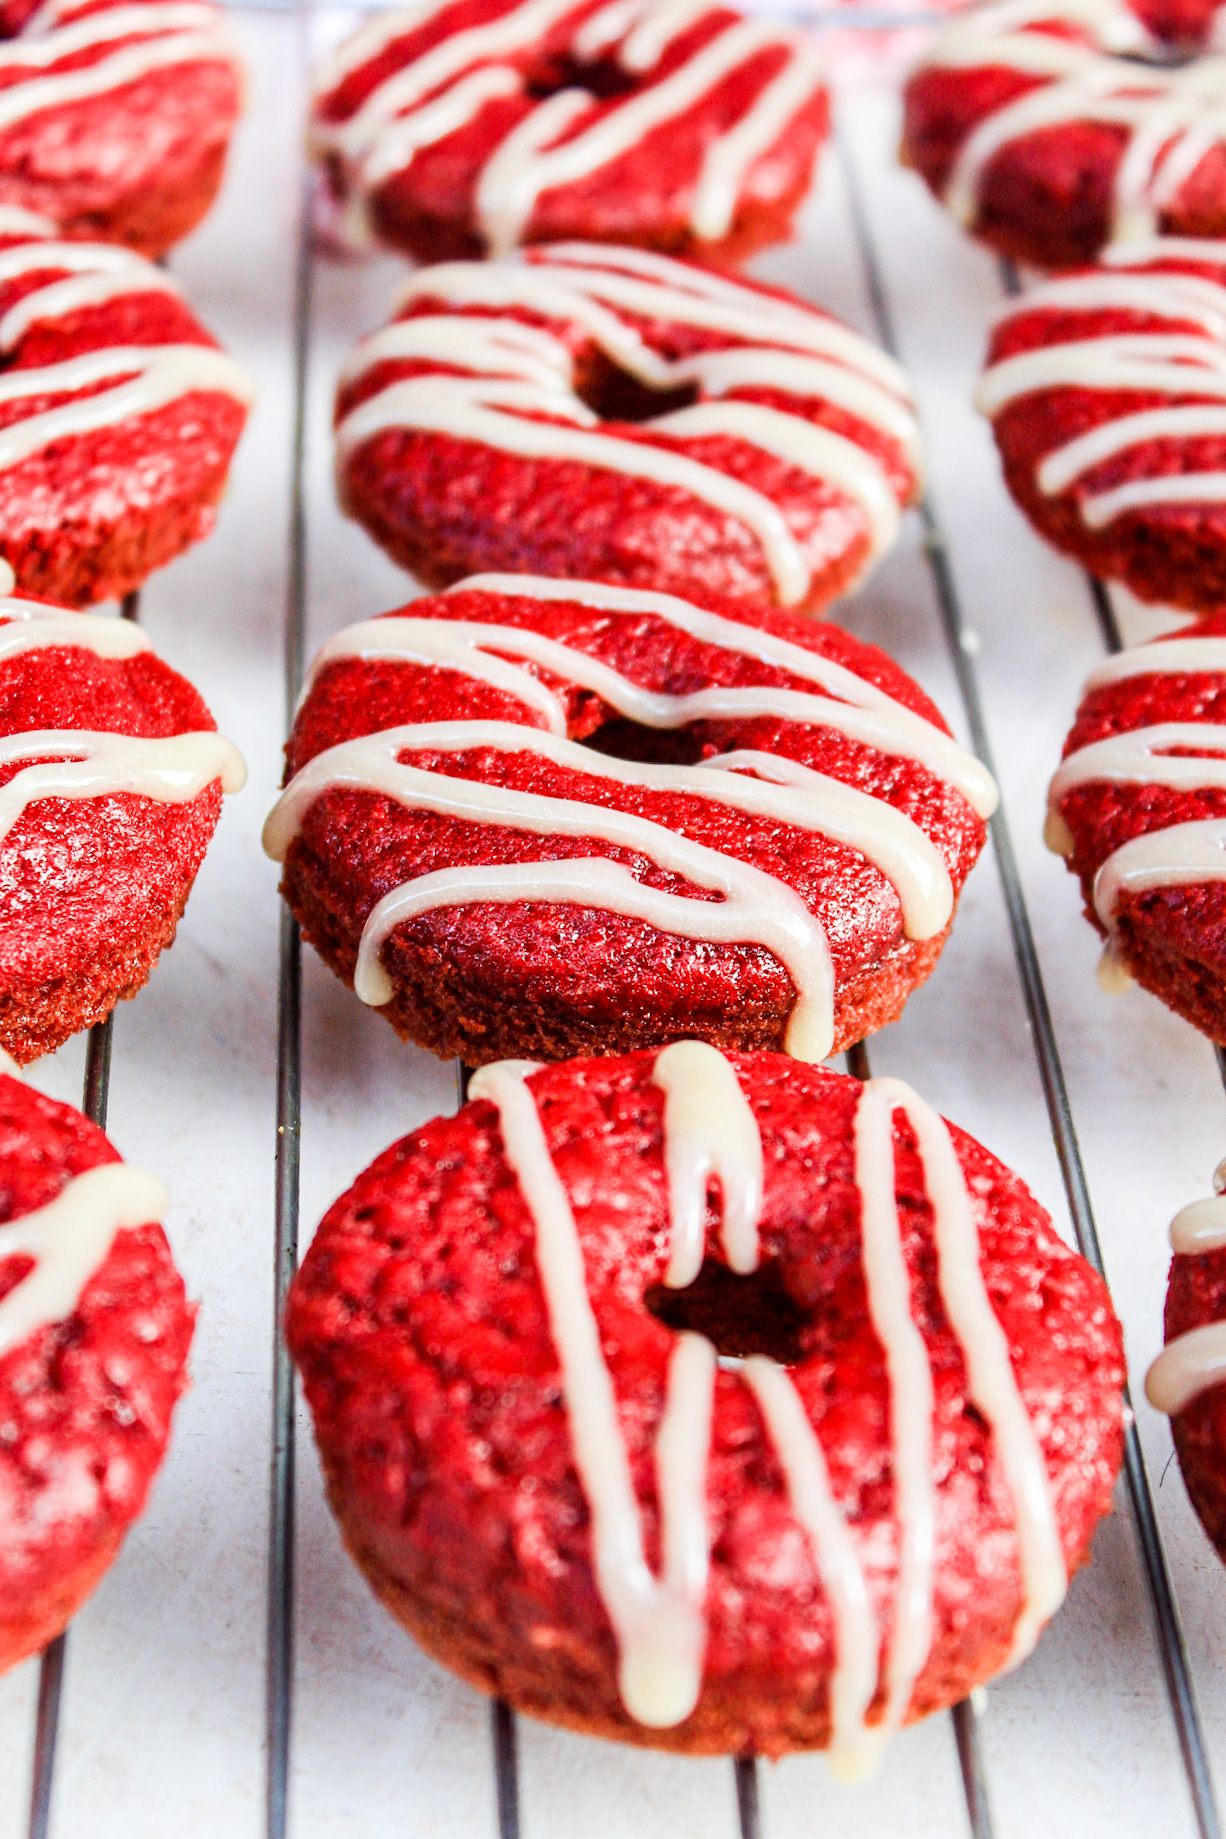 Red Velvet Donuts with Cream Cheese Drizzle